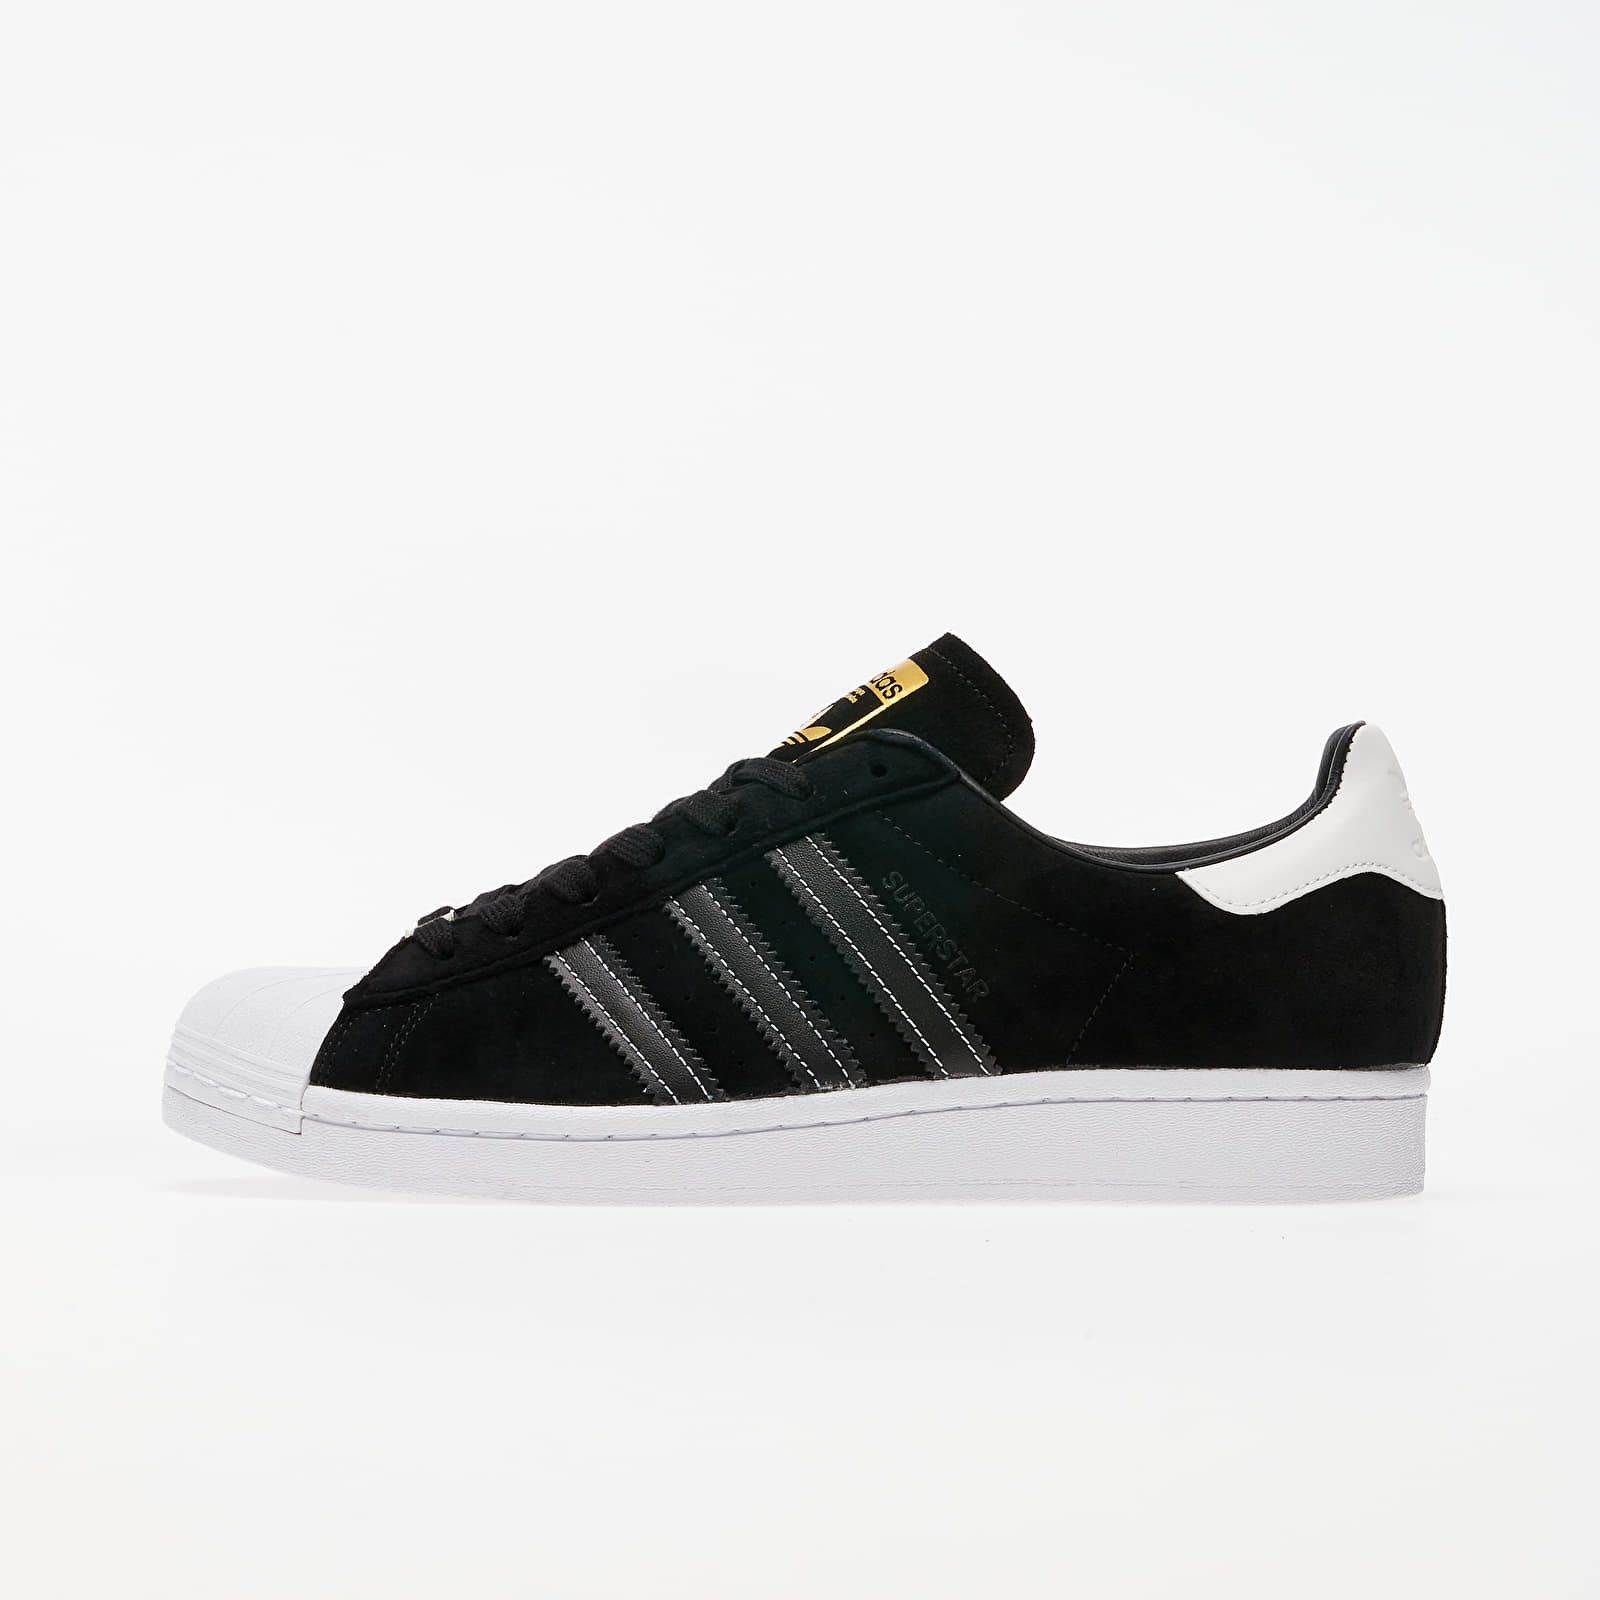 Men's shoes adidas Superstar Core Black/ Core Black/ Gold Metalic